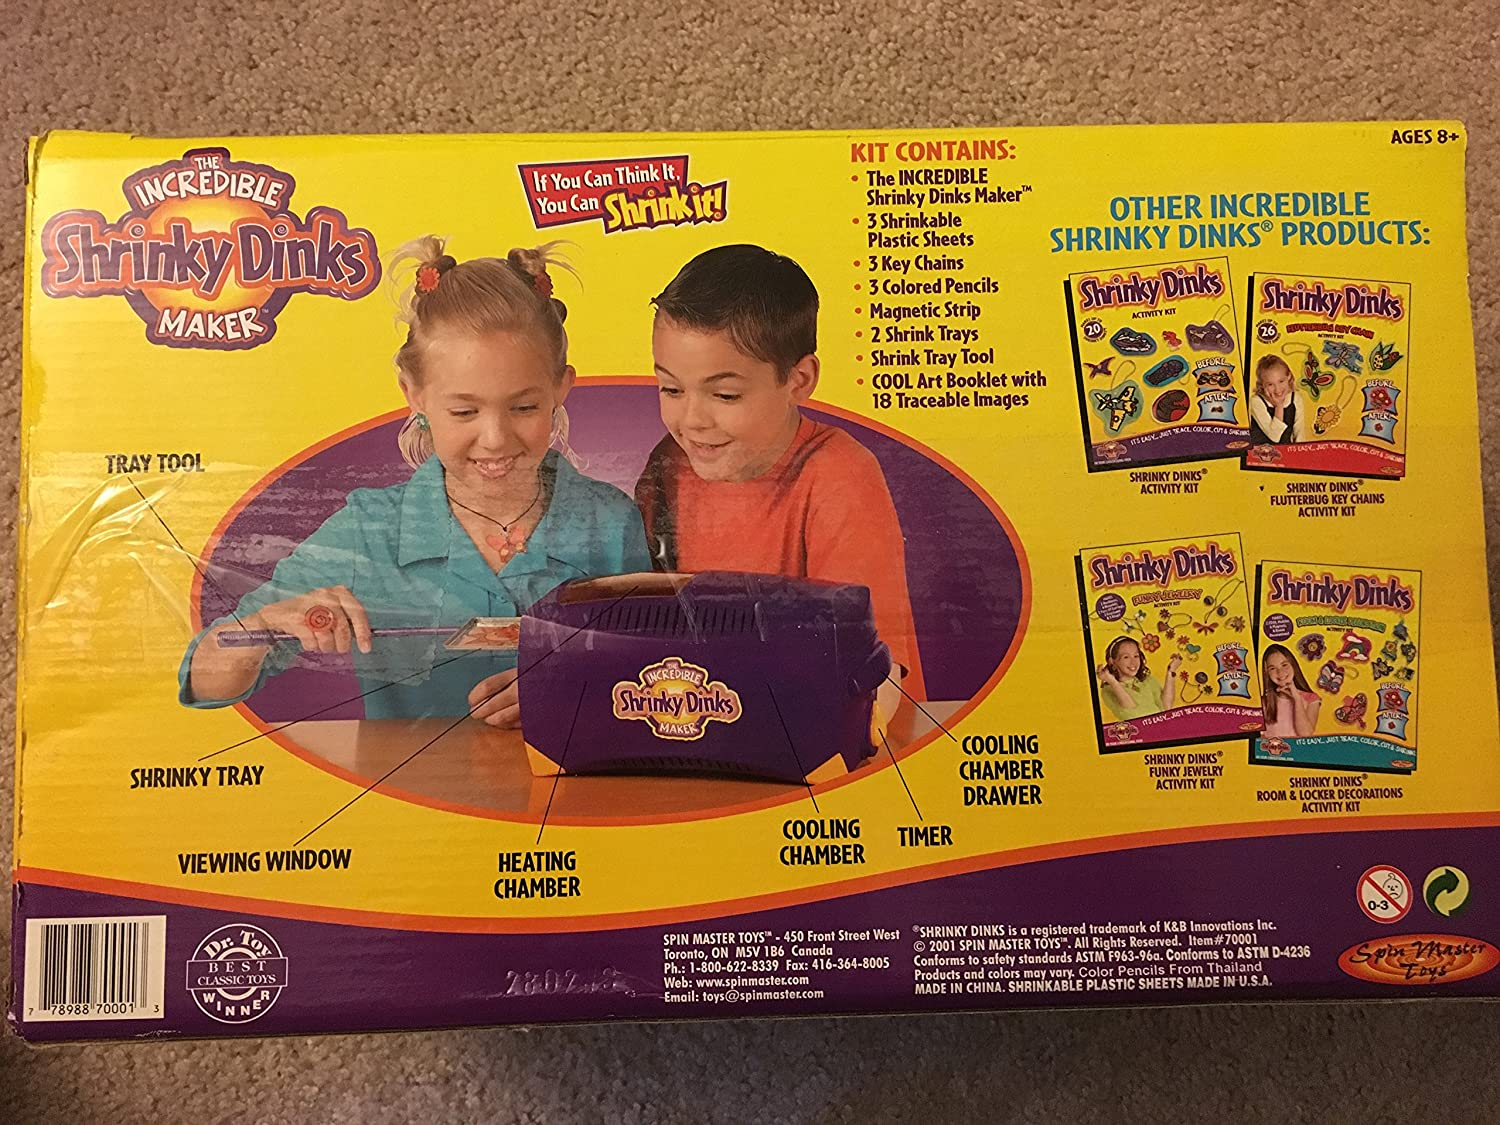 Amazon. Com: the incredible shrinky dink maker: toys & games.